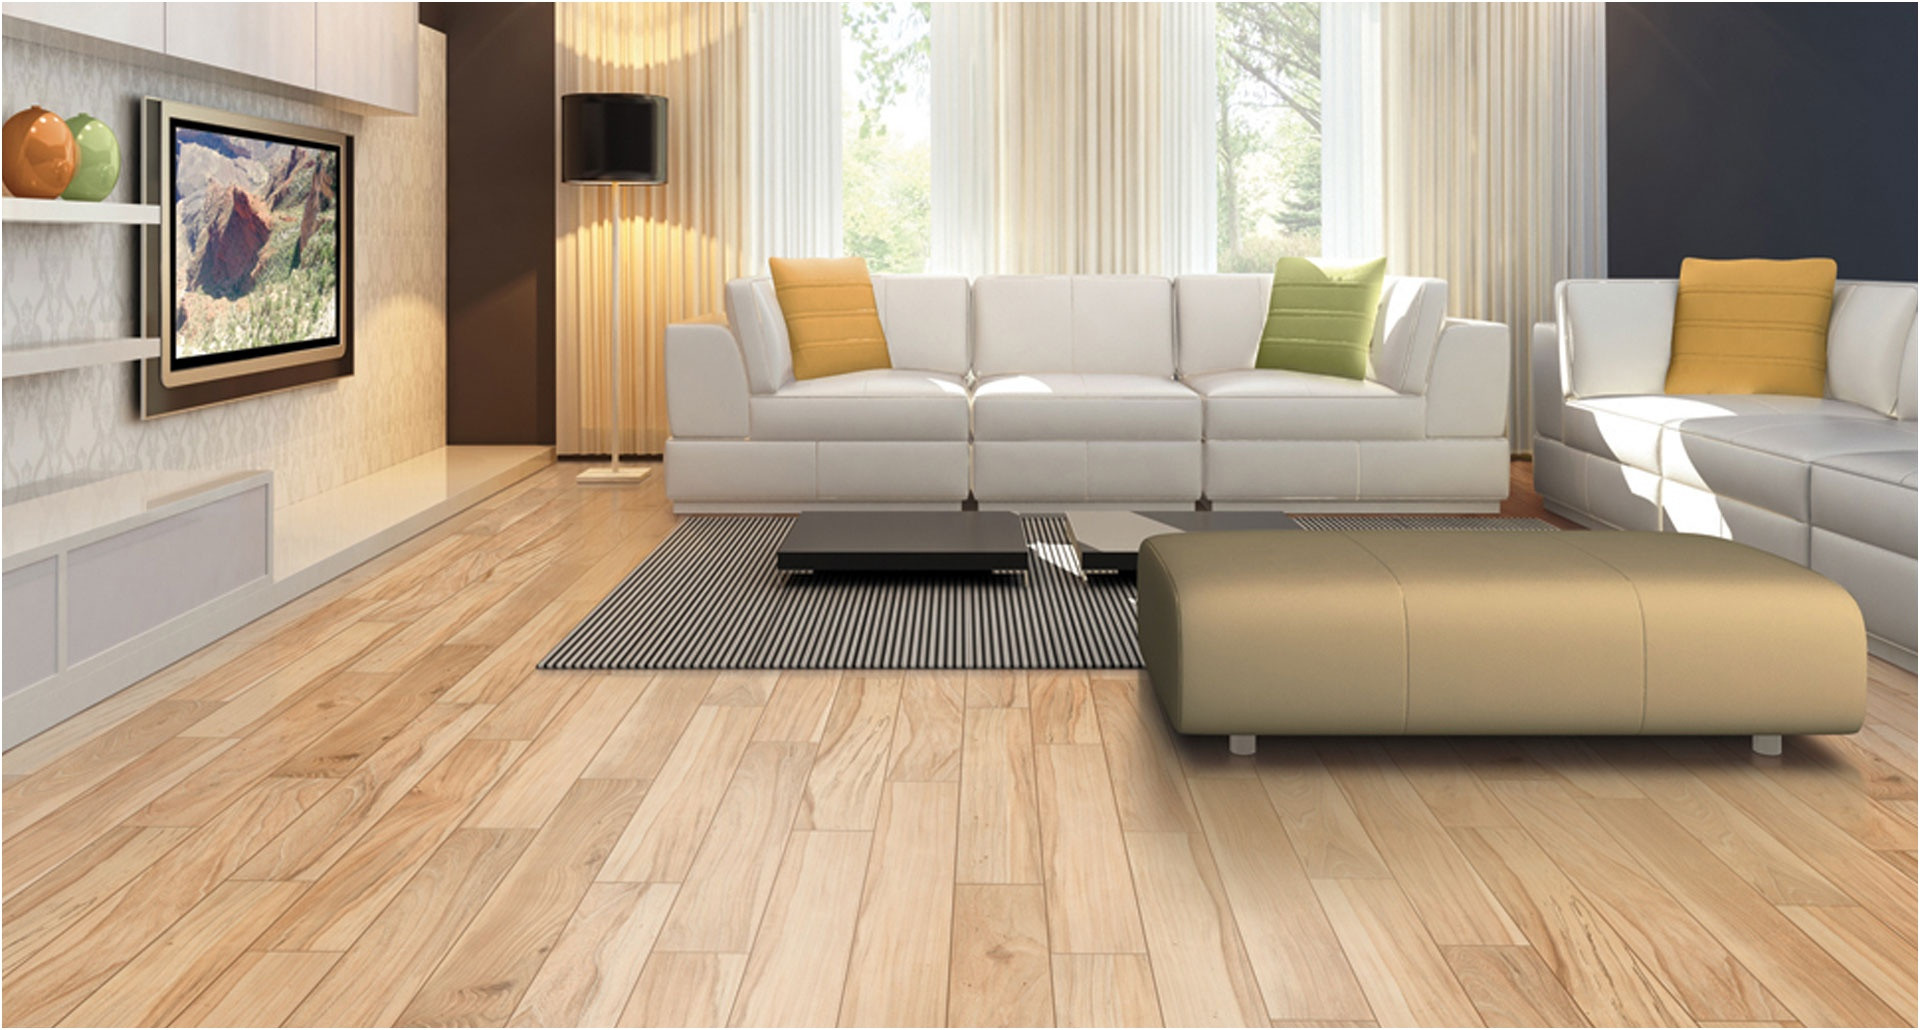 Bruce Hardwood Floor Cleaner Lowes Of Lowes Hardwood Flooring Installation Cost Inspirational Flooring with Regard to Lowes Hardwood Flooring Installation Cost Inspirational Flooring Pergo Oak Lowes Pergo